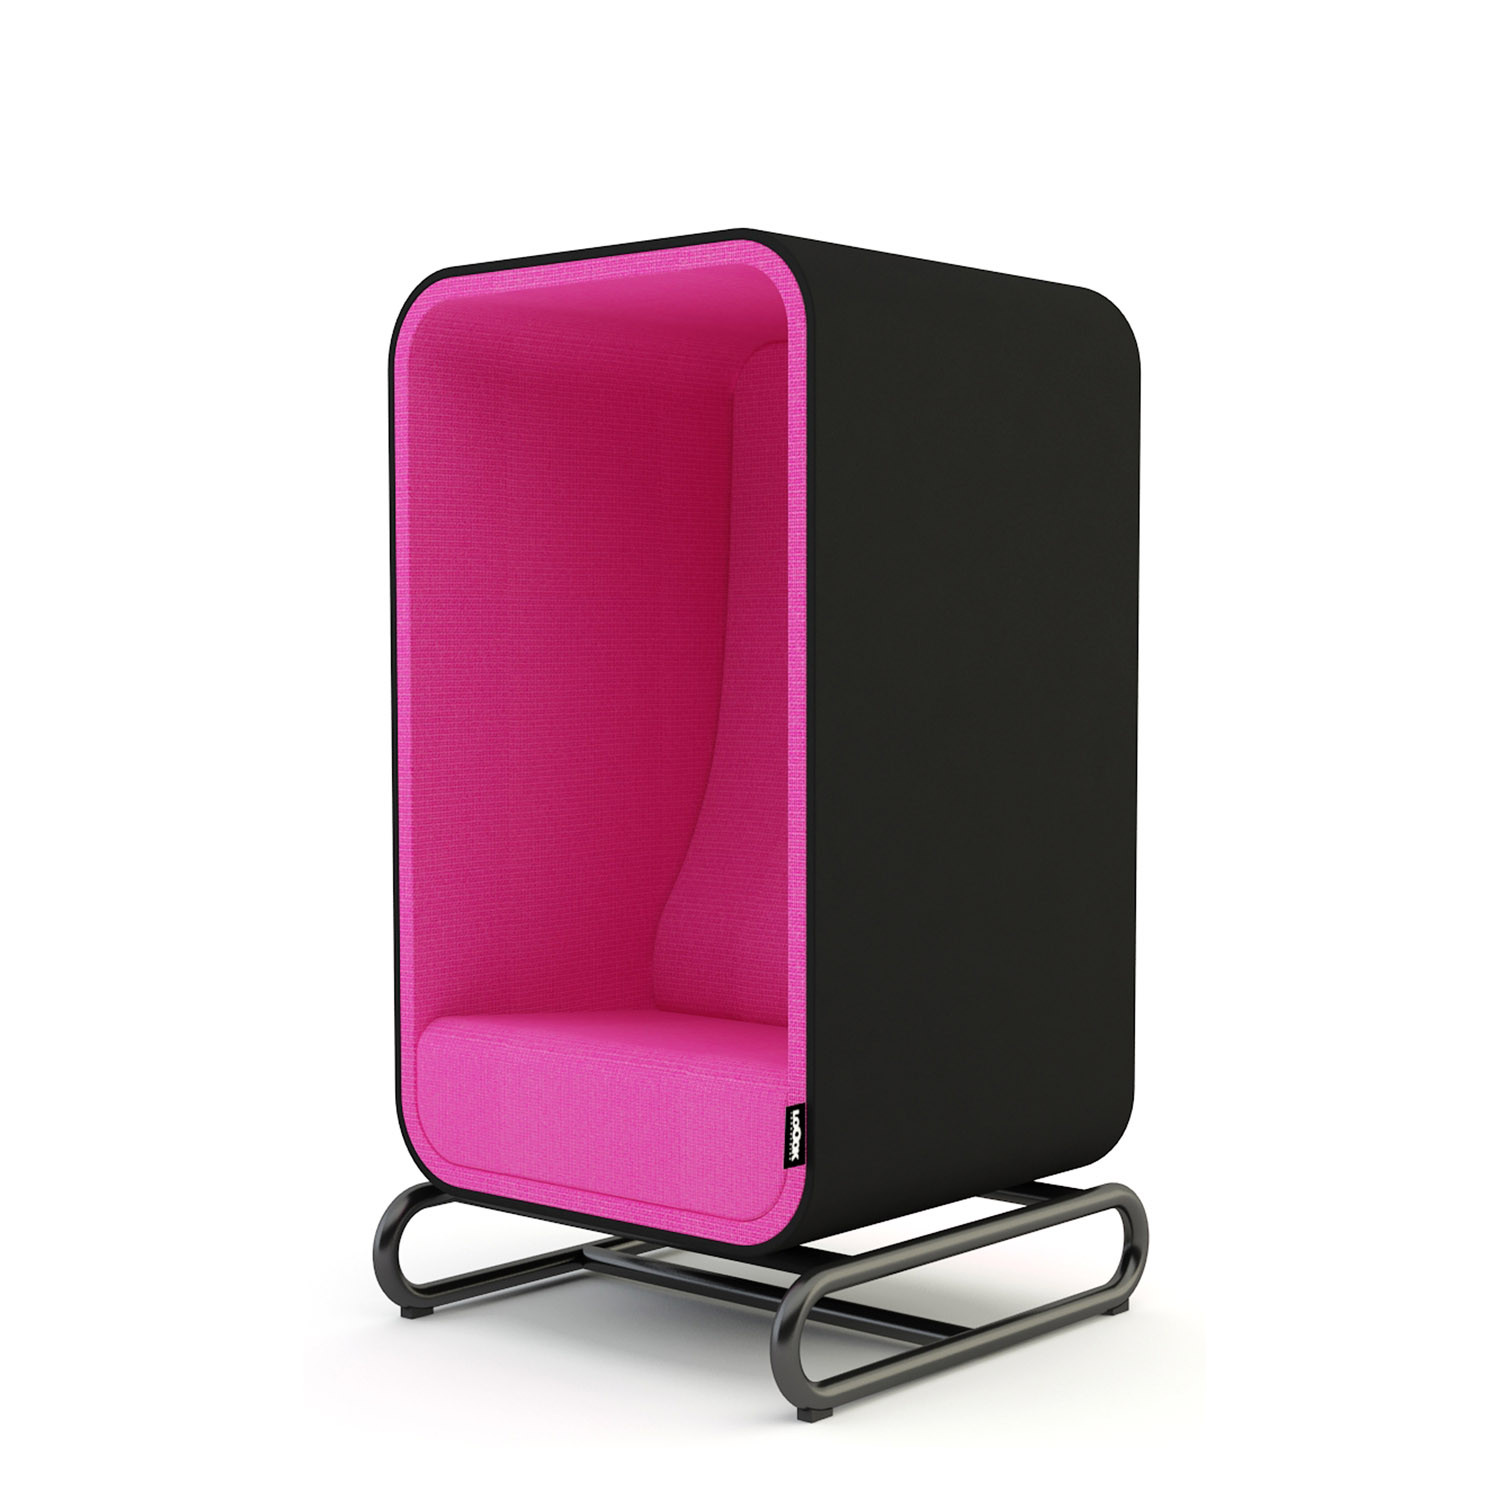 The Box Lounge Pod Armchair